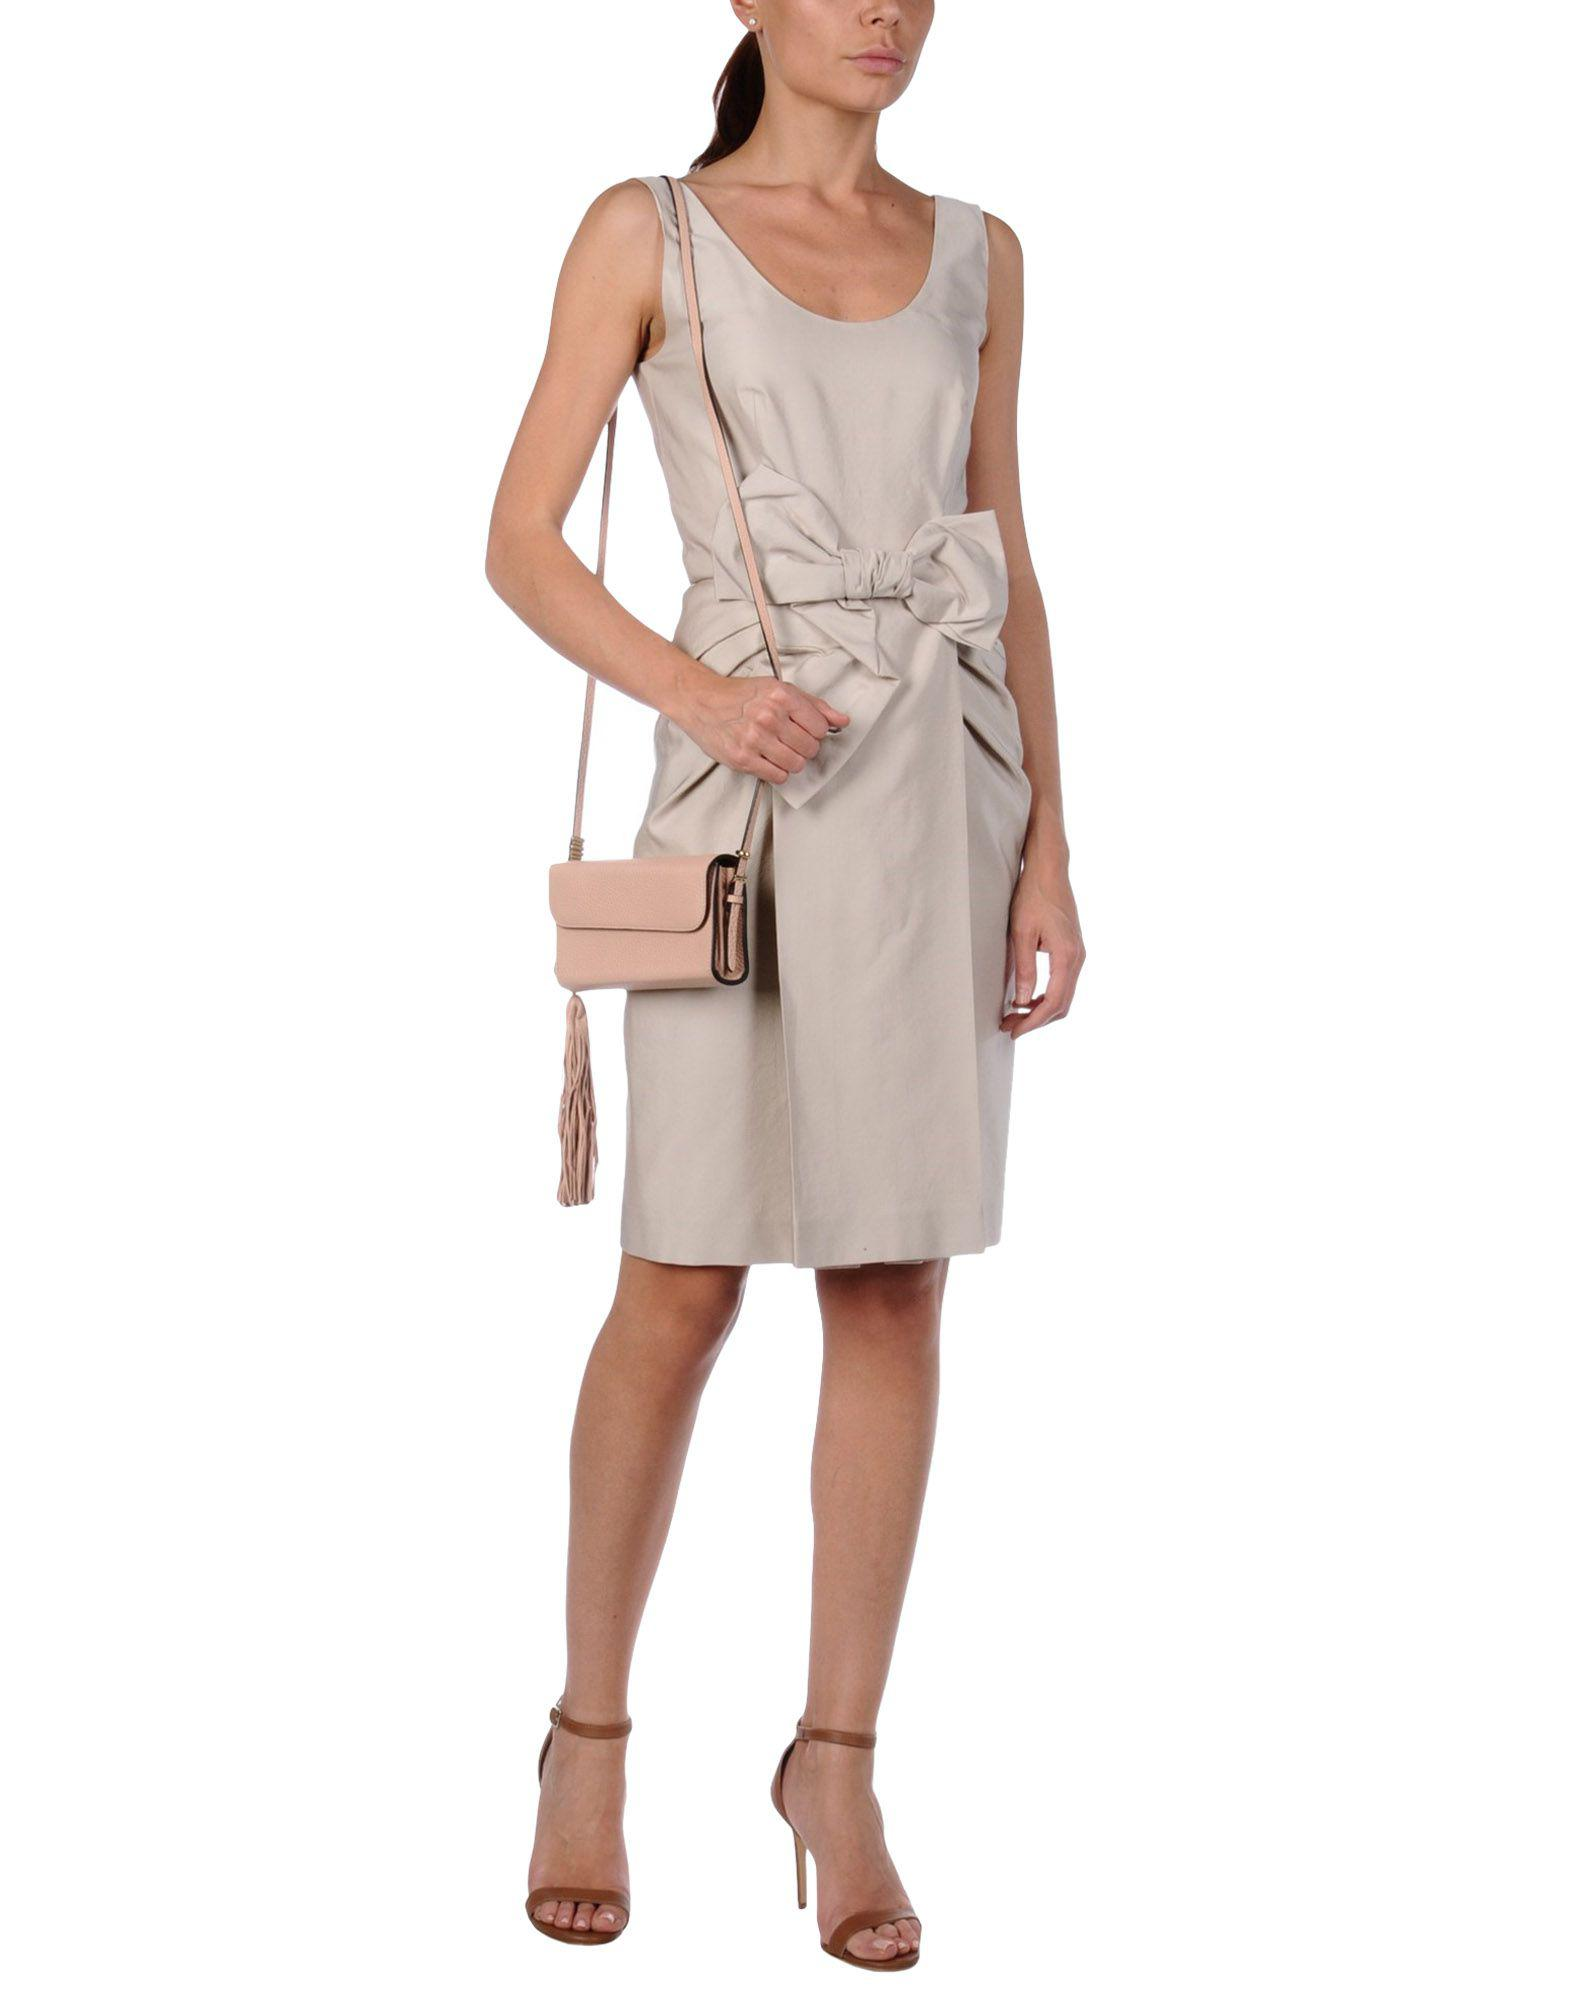 Ermanno Scervino Leather Cross-body Bag in Pale Pink (Pink)